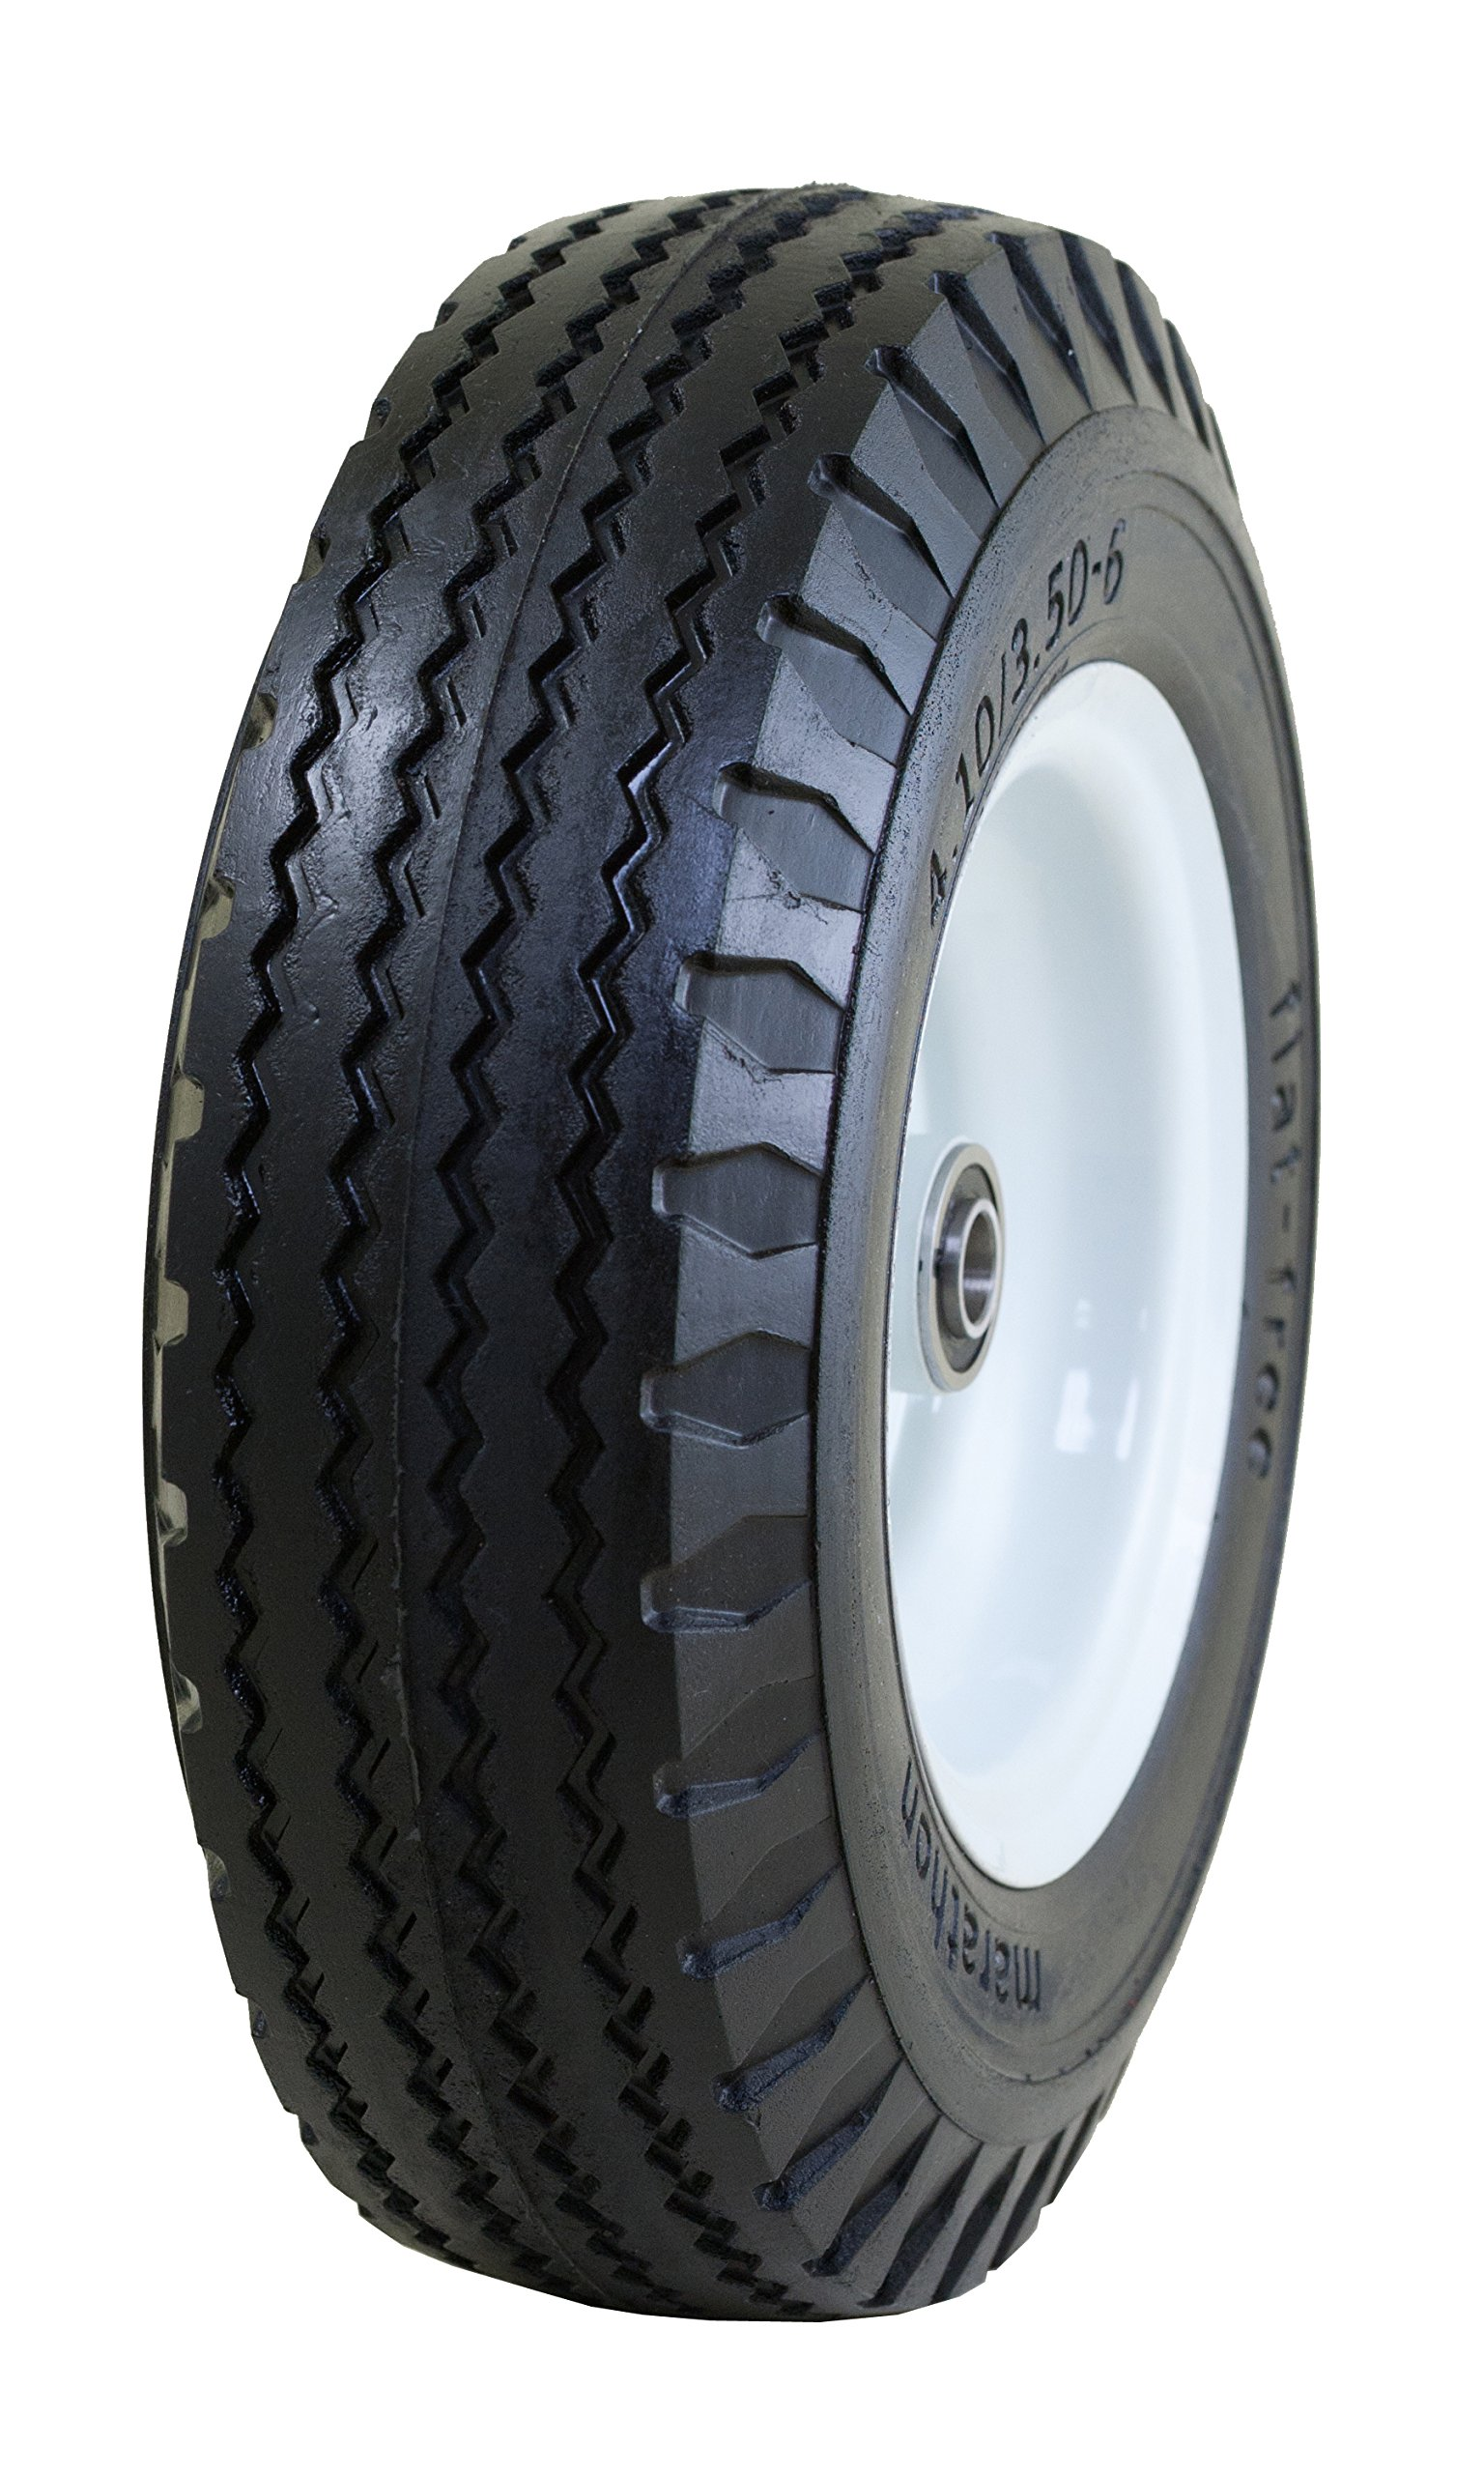 Marathon 4.10/3.50-6'' Flat Free, Hand Truck/All Purpose Utility Tire on Wheel, 2.25'' Centered Hub, 5/8'' Bearings